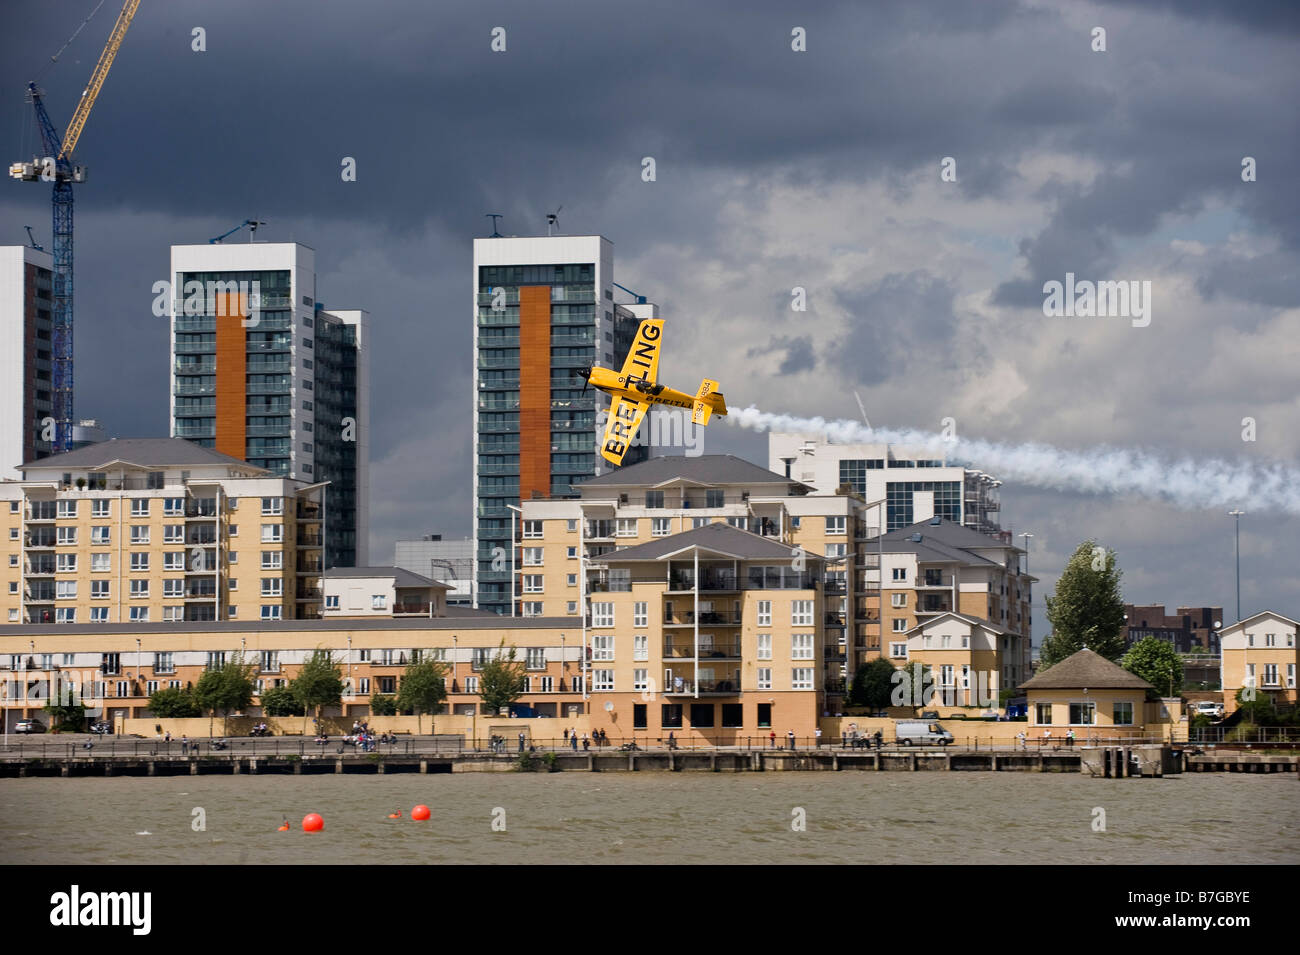 Light race plane flying through air filled pylons at Red Bull air race London - Stock Image